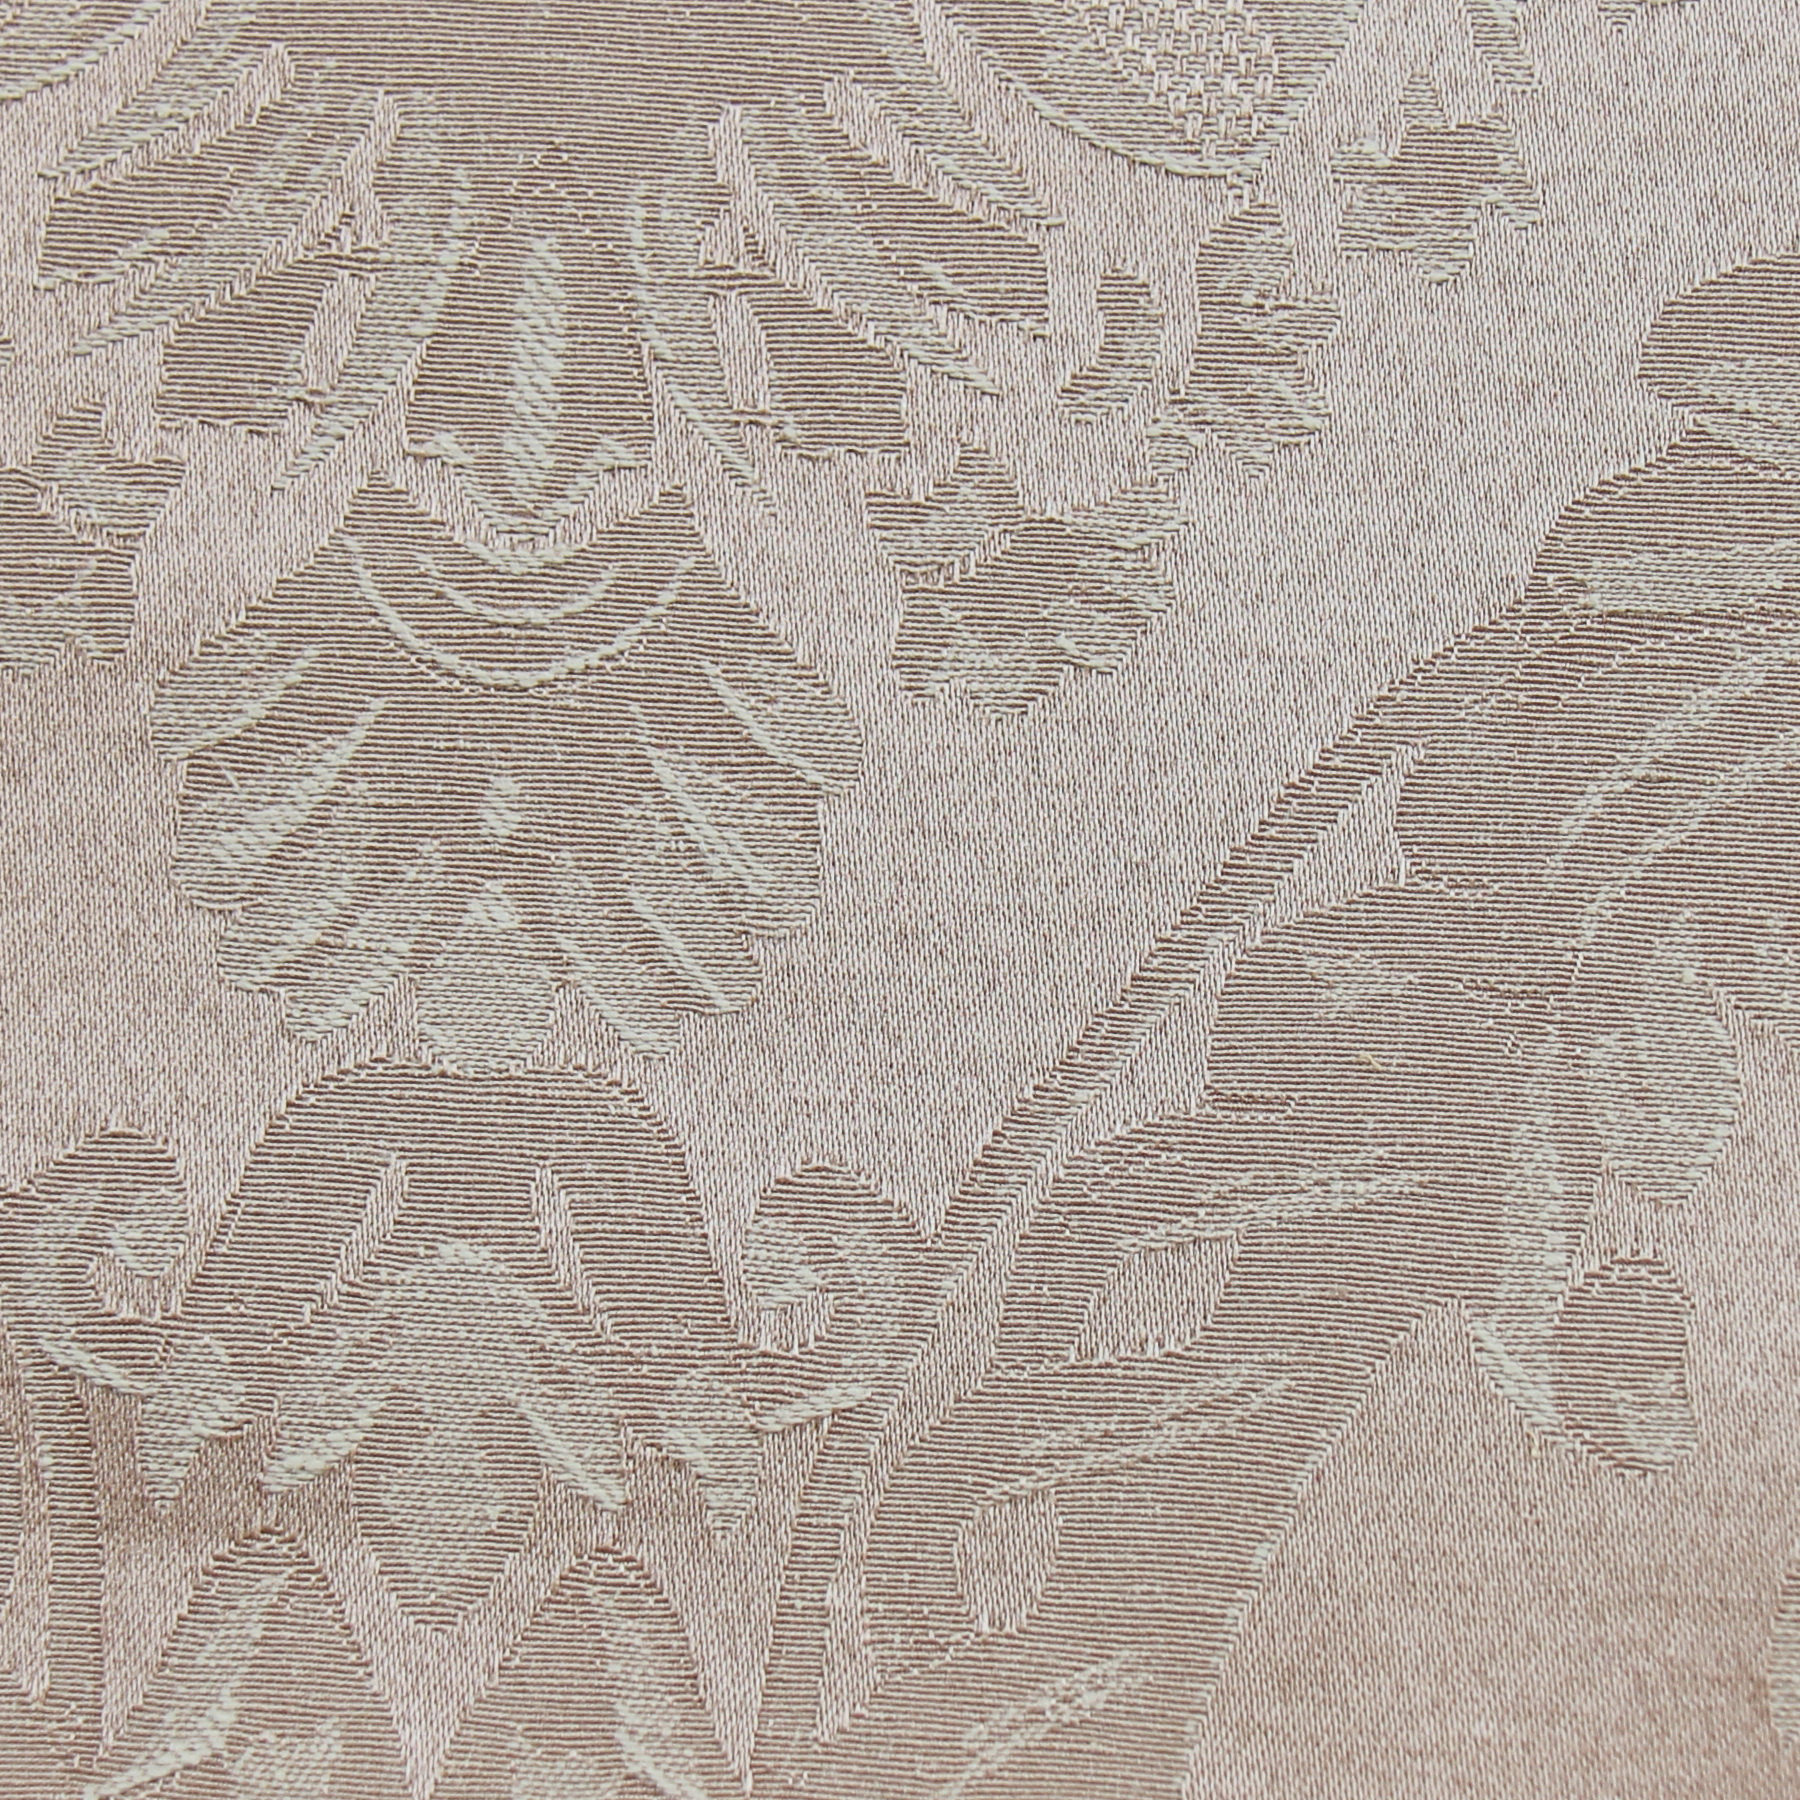 NO 40-45 RS X1 Plus NO 21 Fabric Upholstery Sample